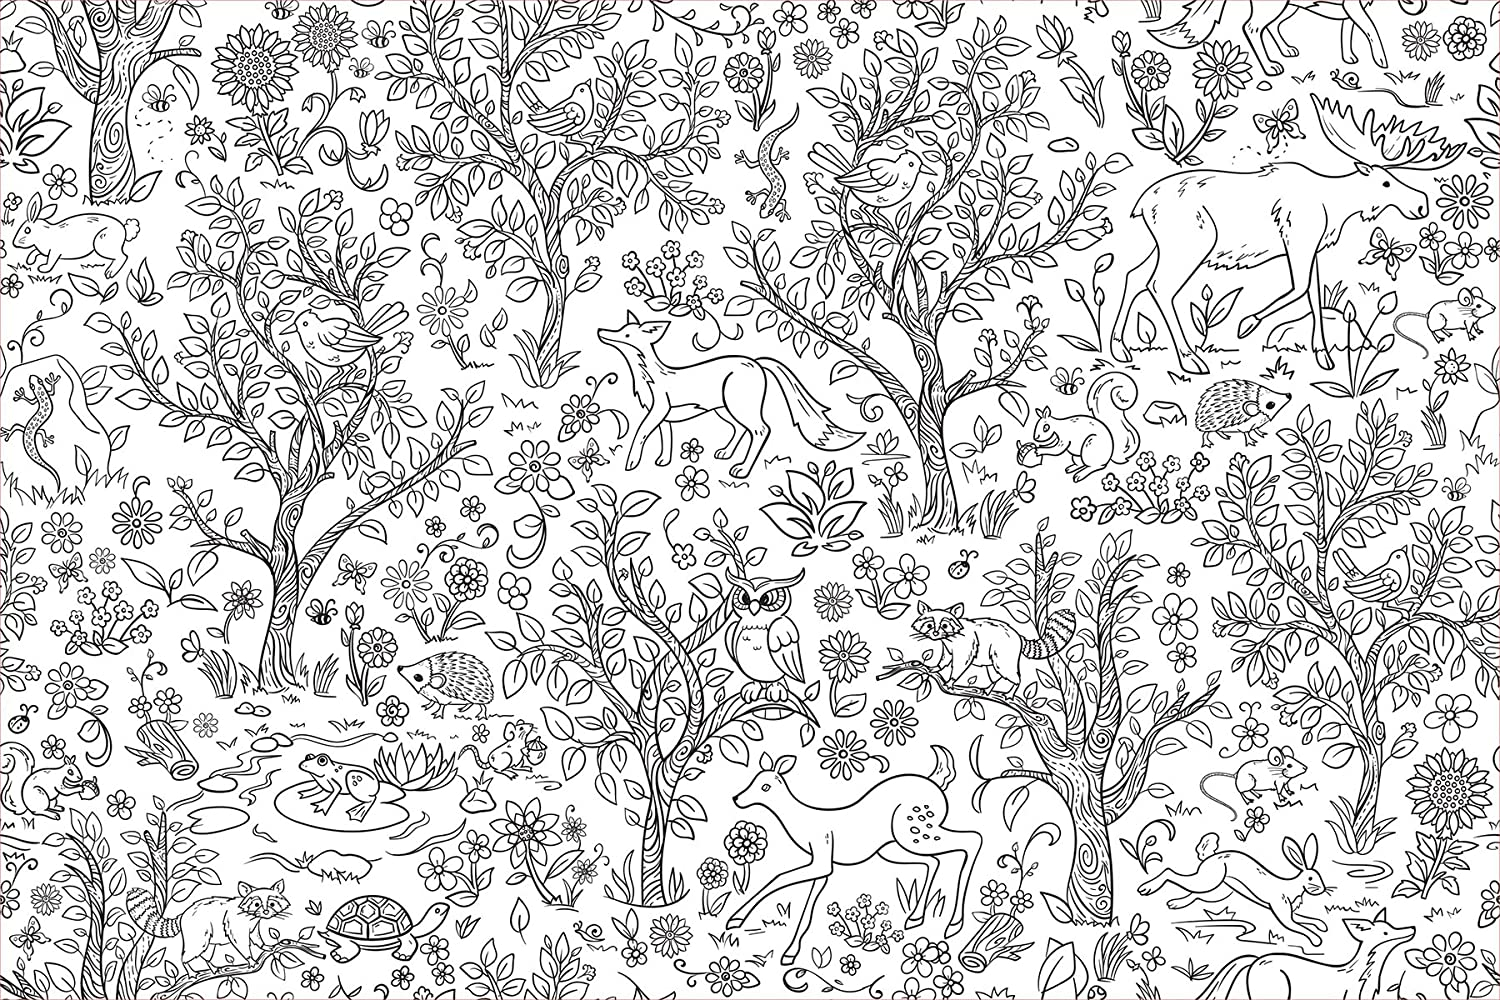 WallPops WPK2185 Wilderness Coloring Wall Decal, White & Off-White